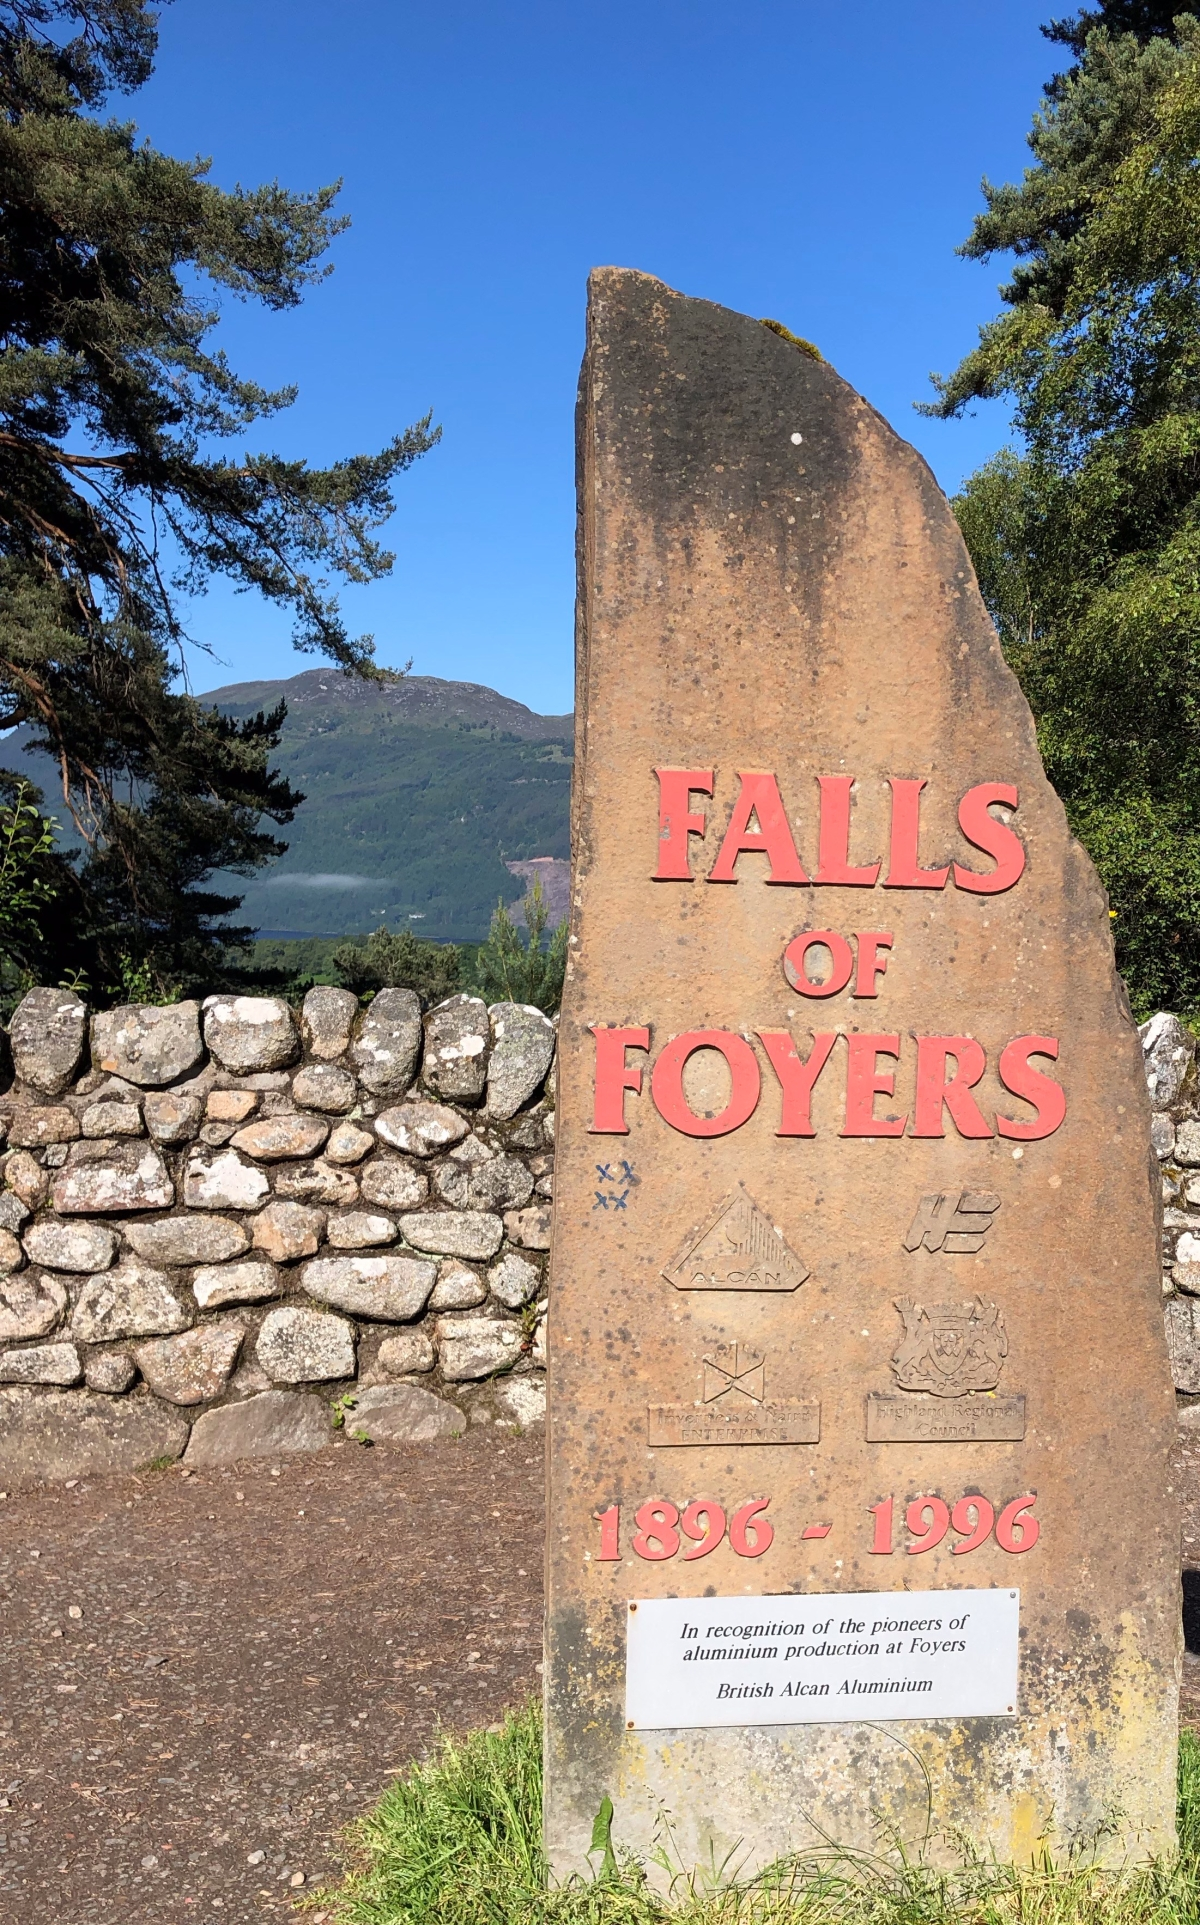 Stone Marking the entrance to Falls of Foyers